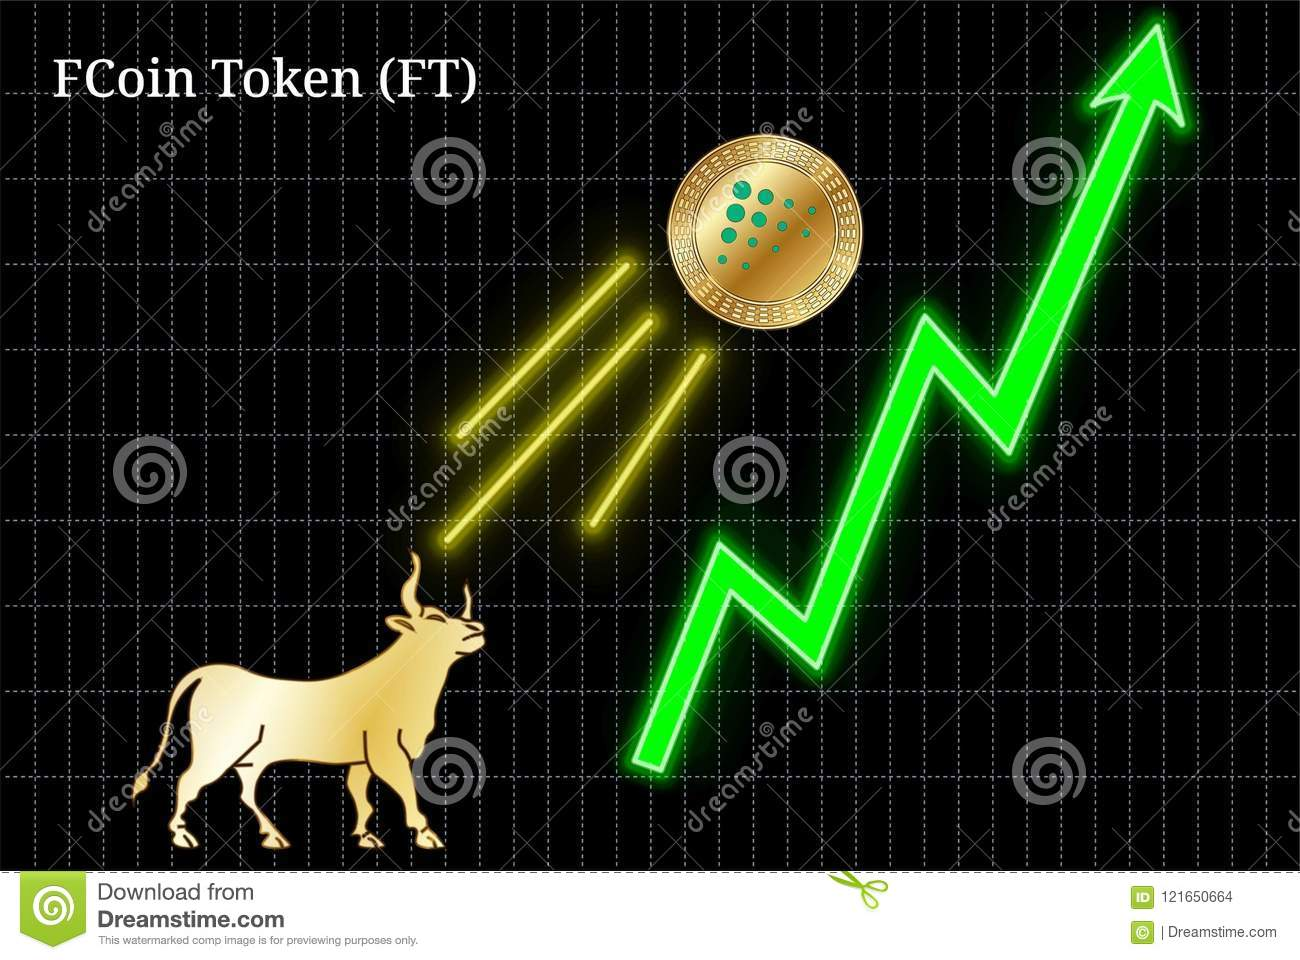 Gold Bull, Throwing Up FCoin Token FT Cryptocurrency Golden Coin Up